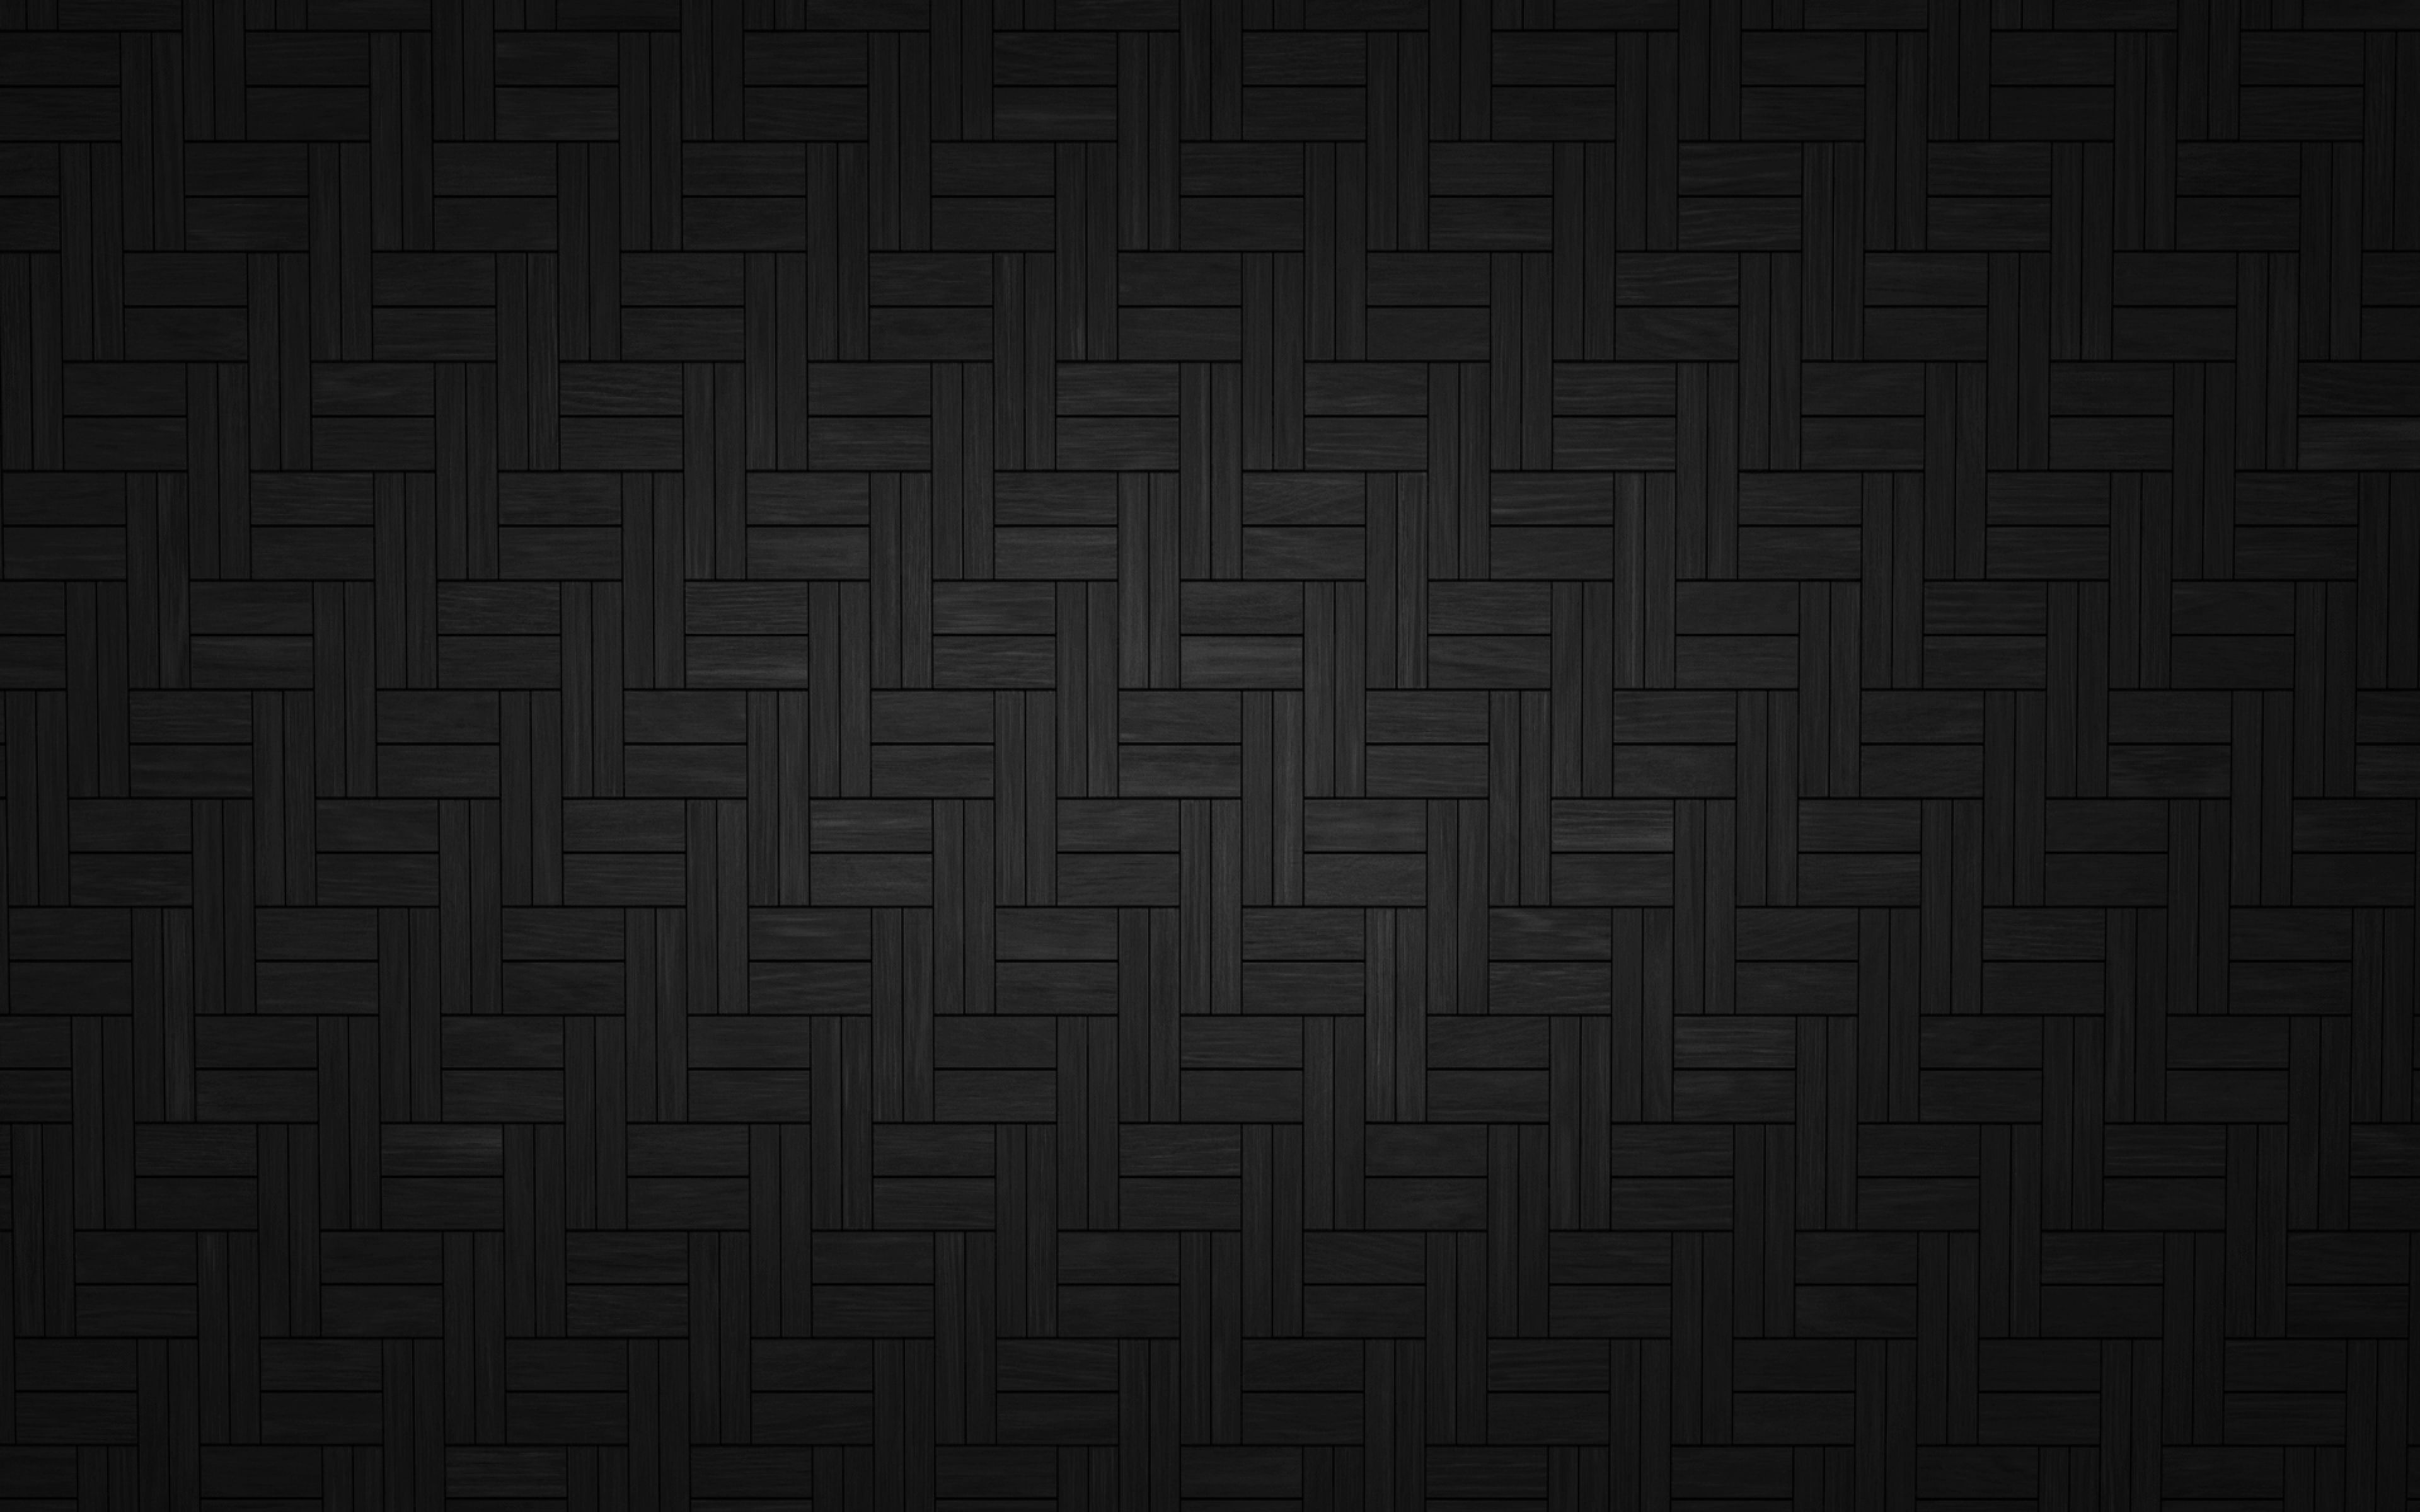 Dark 4k Wallpapers Top Free Dark 4k Backgrounds Wallpaperaccess